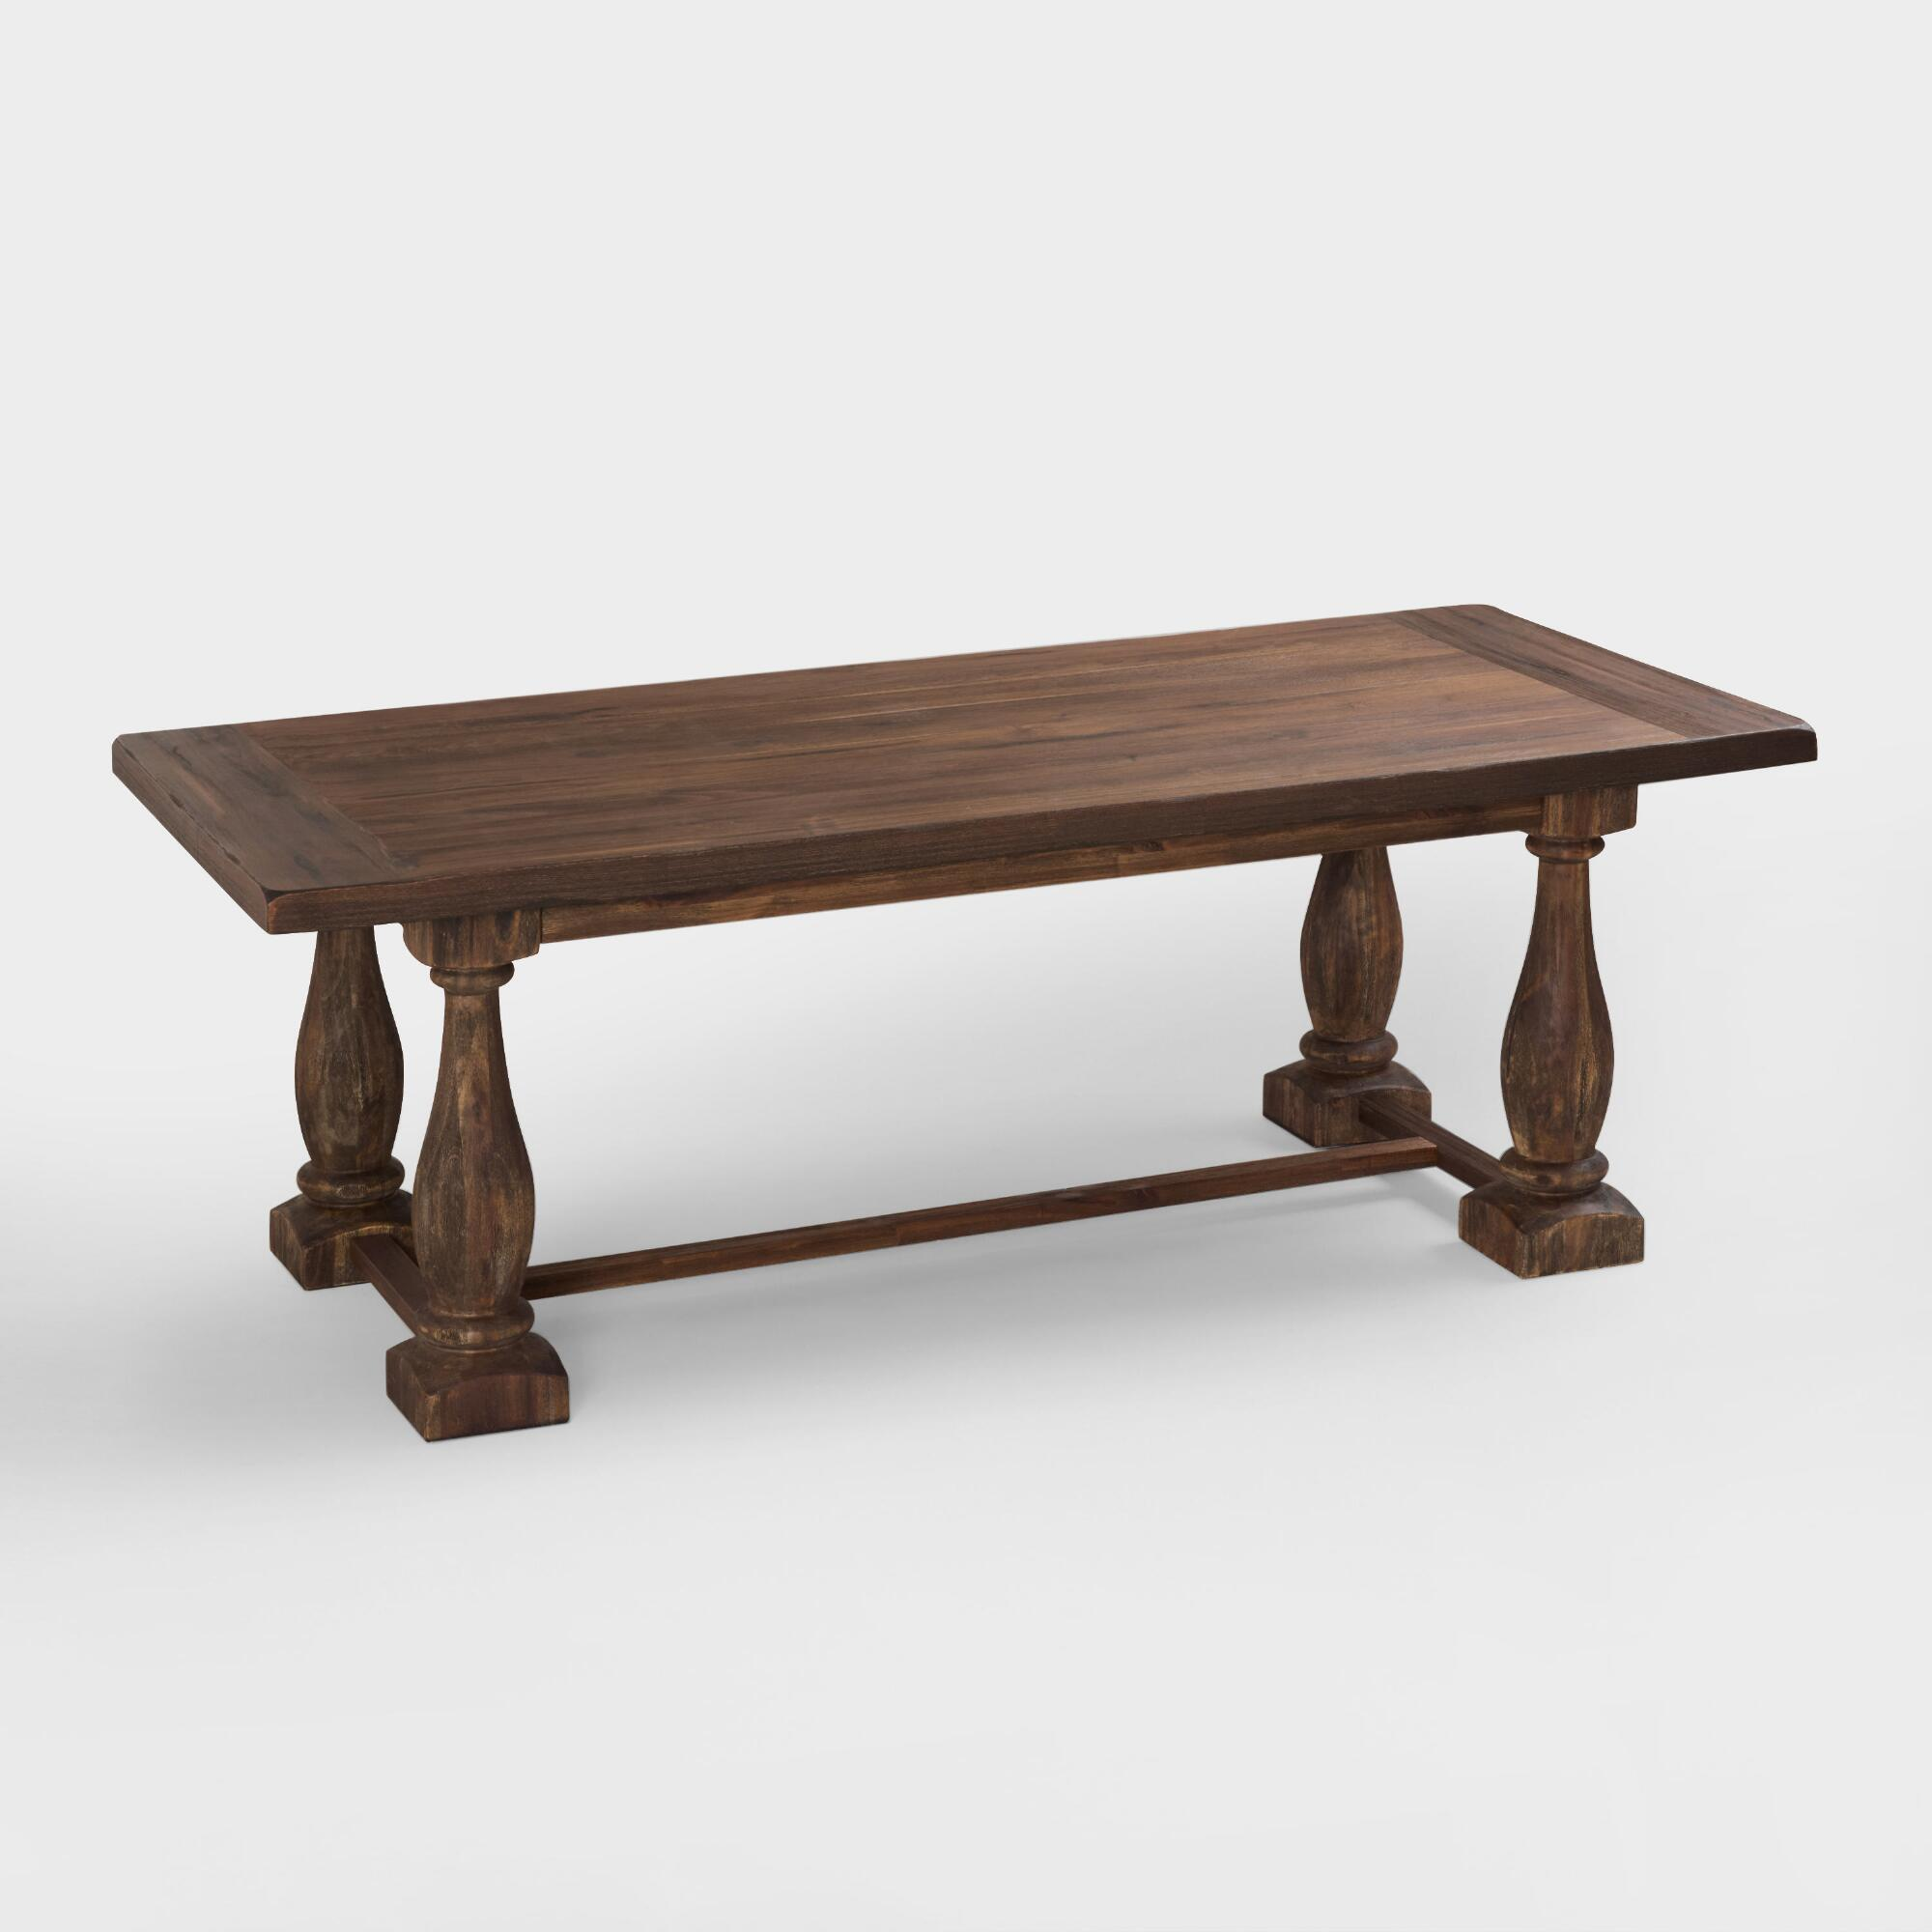 Rustic Java Greyson Fixed Dining Table: Brown - Wood by World Market